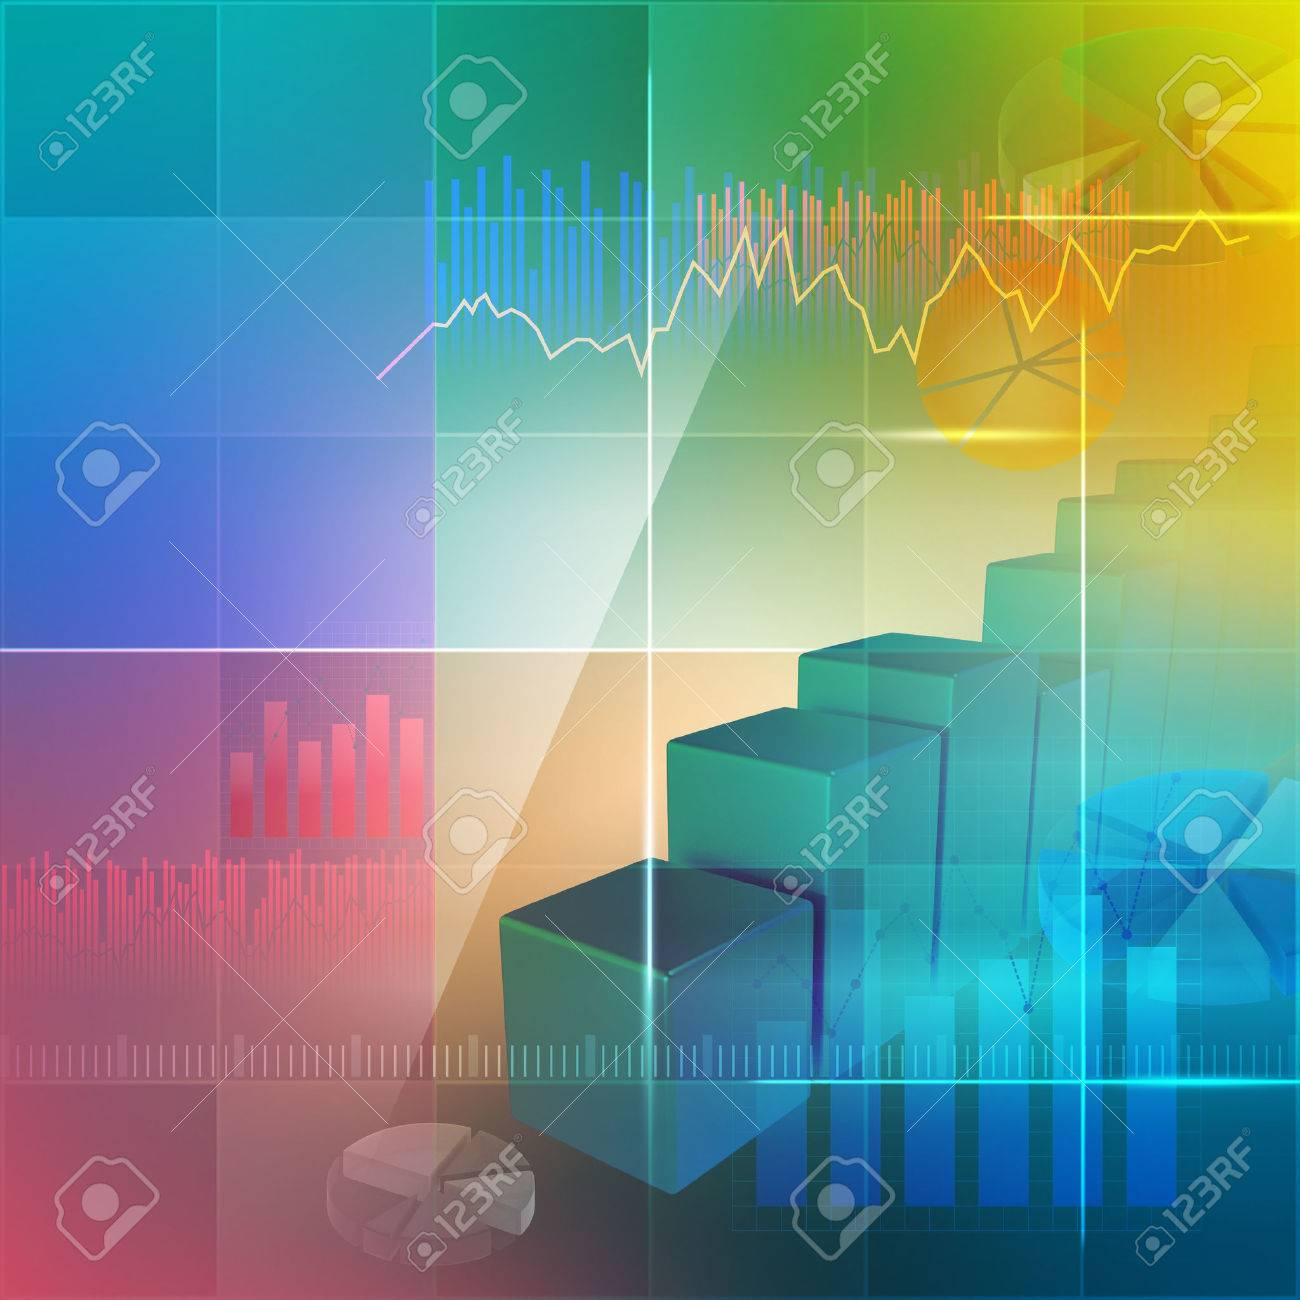 Colorful background for illustrating business - 35654011